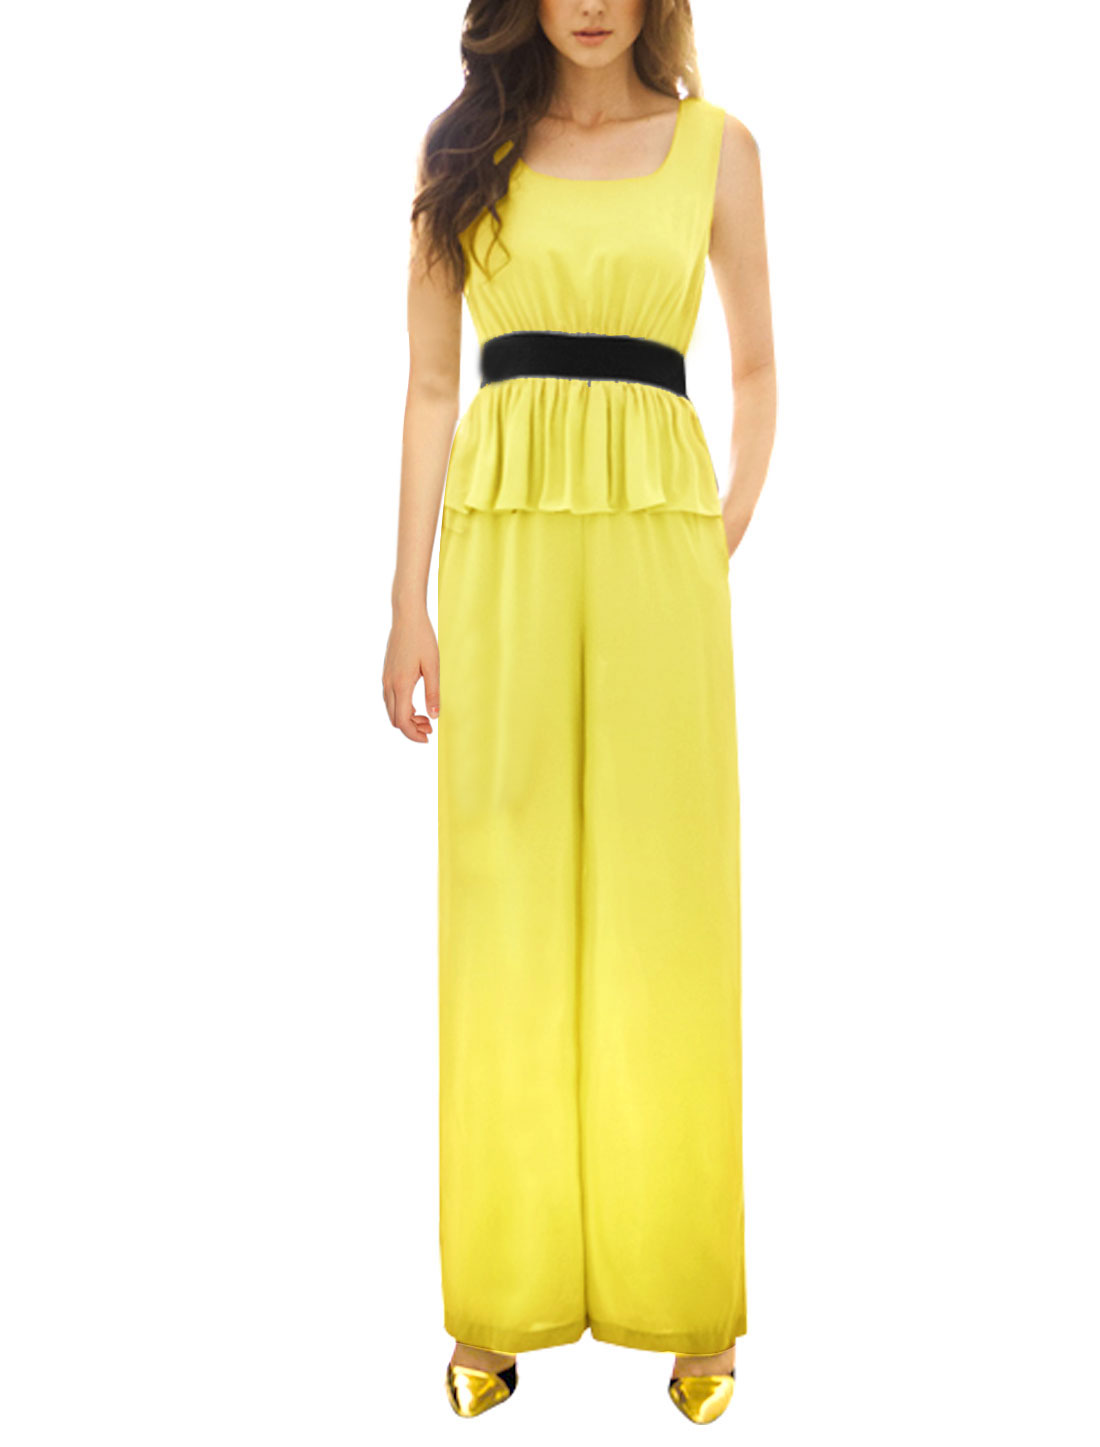 Ladies Sleeveless Round Neck Elatic Waist Full Length Summer Jumpsuit Yellow XS